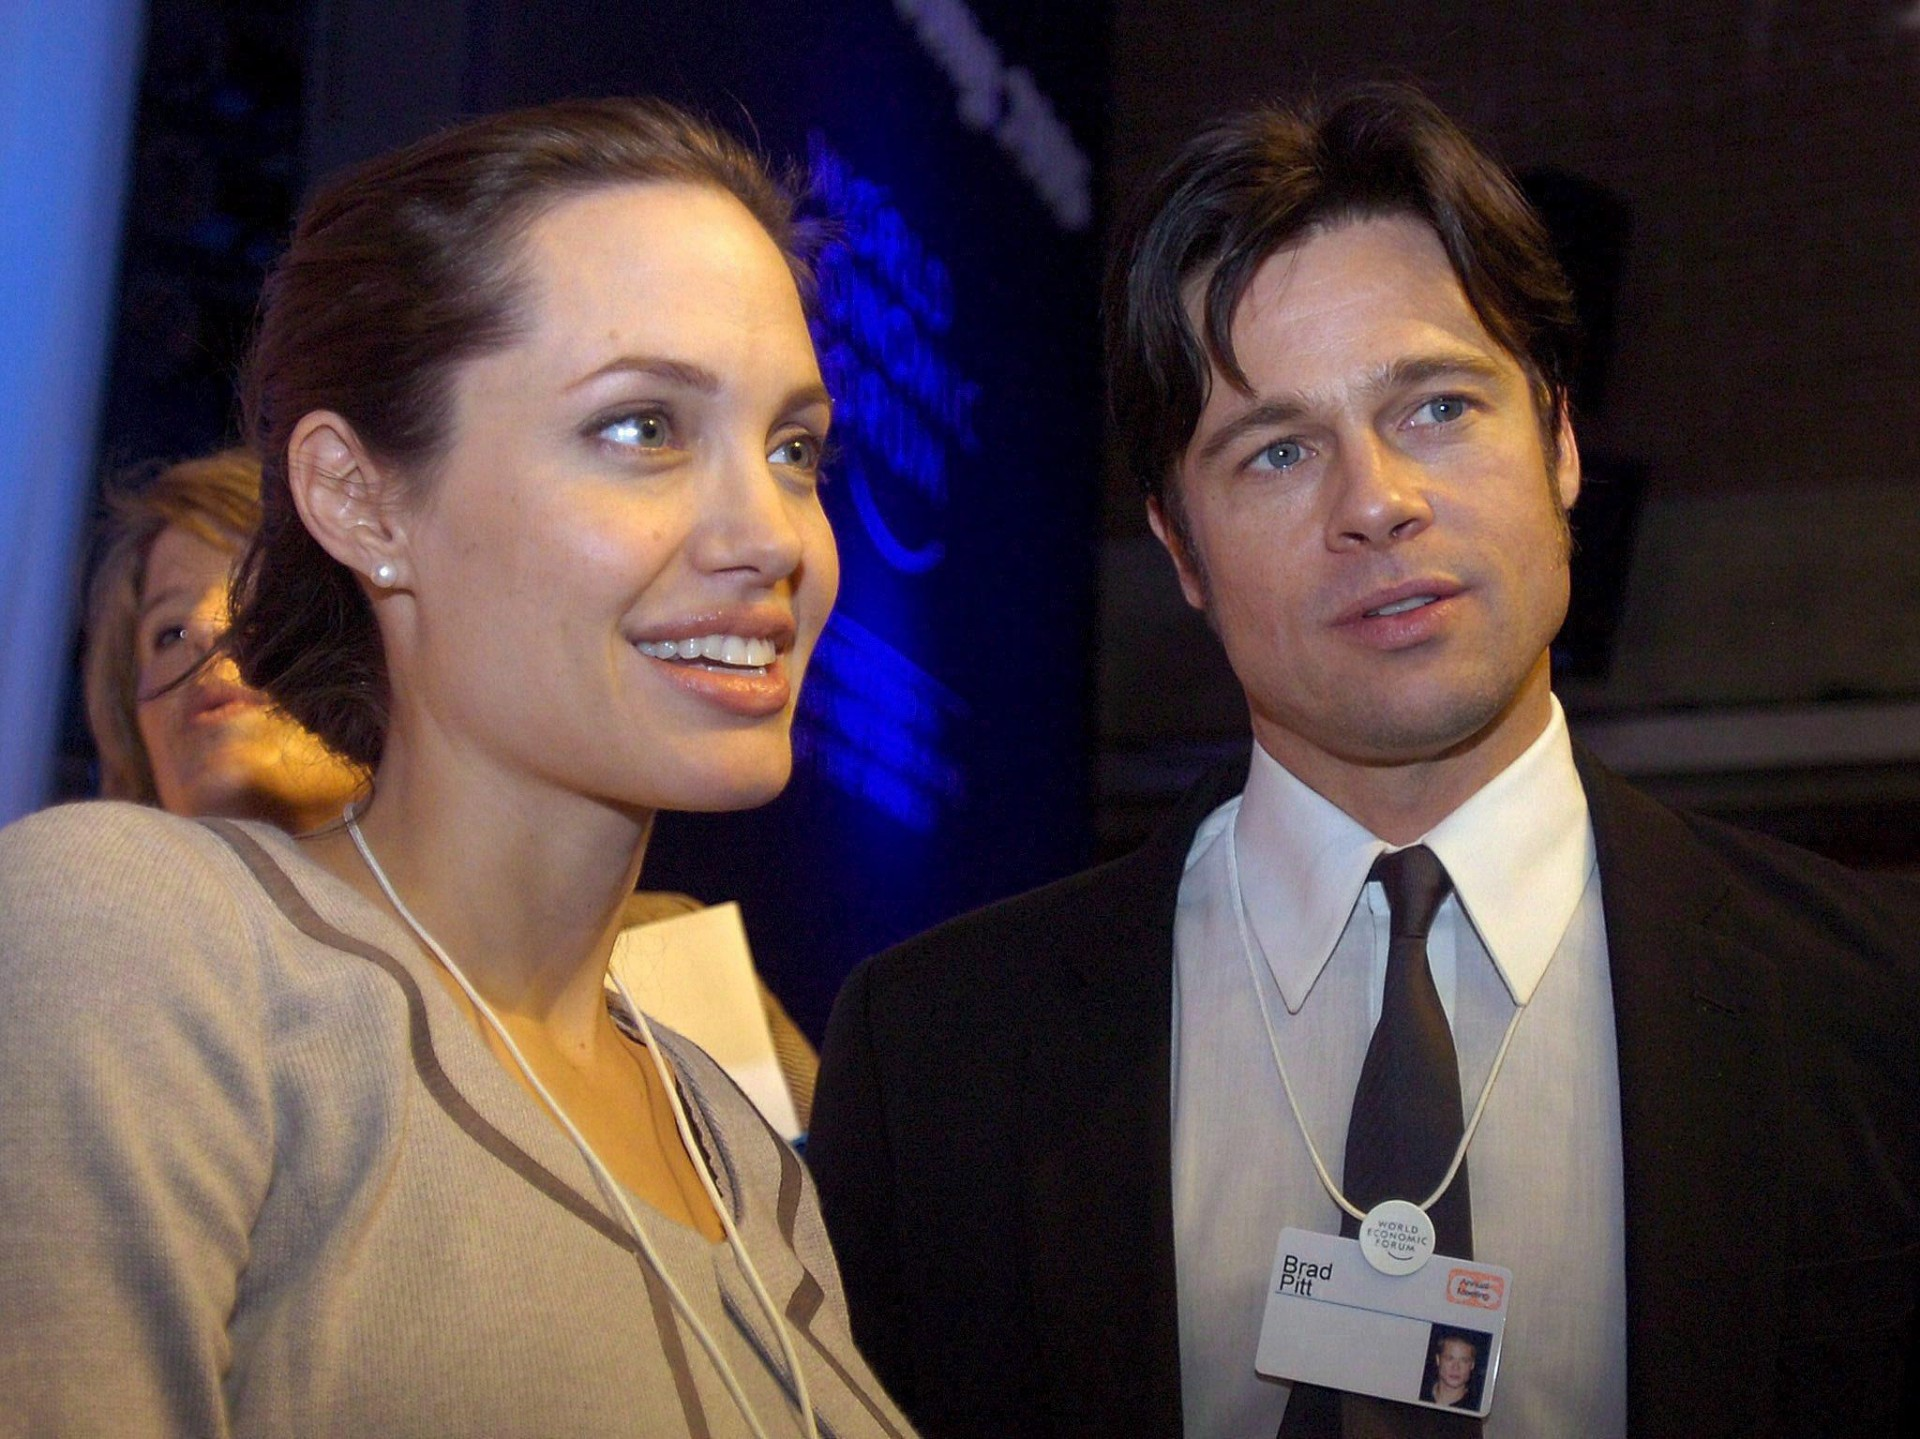 epa05549357 (FILE) The file picture dated 26 January 2006 shows United Nations High Commissioner for Refugees (UNHCR) Goodwill Ambassador, US actress Angelina Jolie (L) and her companion fellow actor Brad Pitt (R) during the World Economic Forum WEF in Davos, Switzerland. According to media reports from 20 September 2016, Angelina Jolie filed for divorce from her husband Brad Pitt, as her lawyer confirmed. EPA/WALTER BIERI